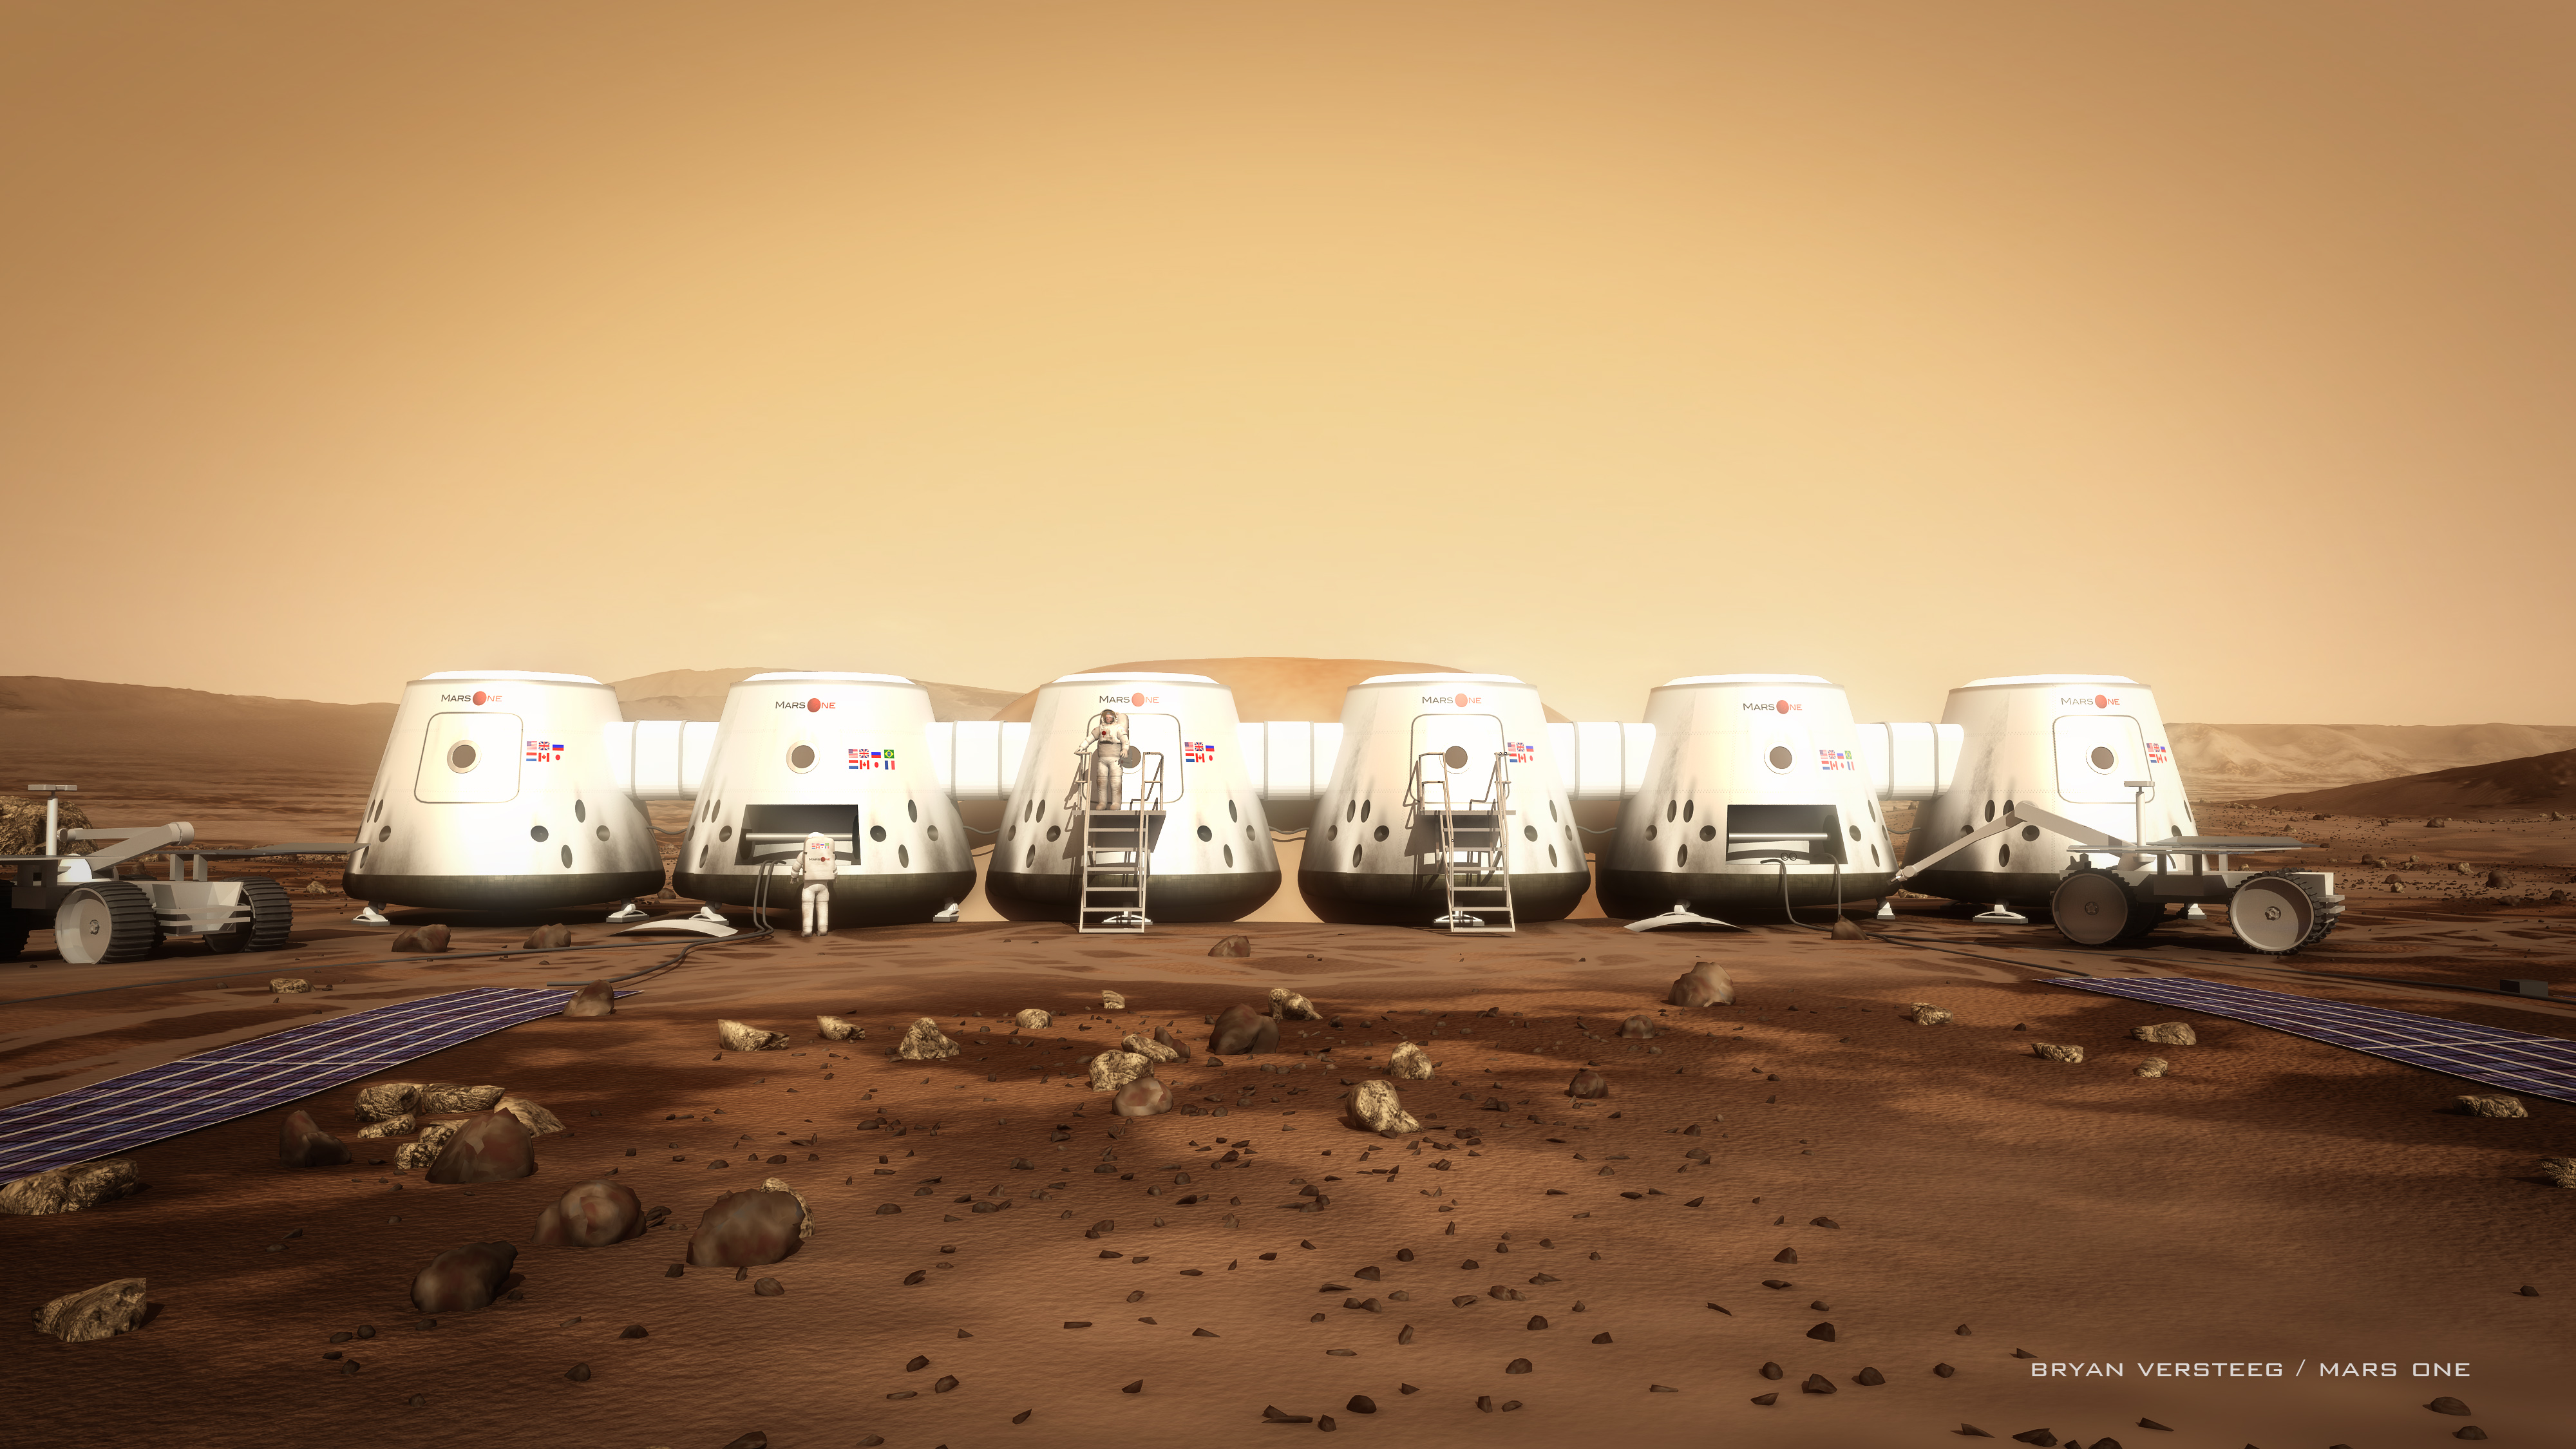 Artist's concept of Mars One astronauts and their habitat. Credit: Bryan Versteeg/Mars One